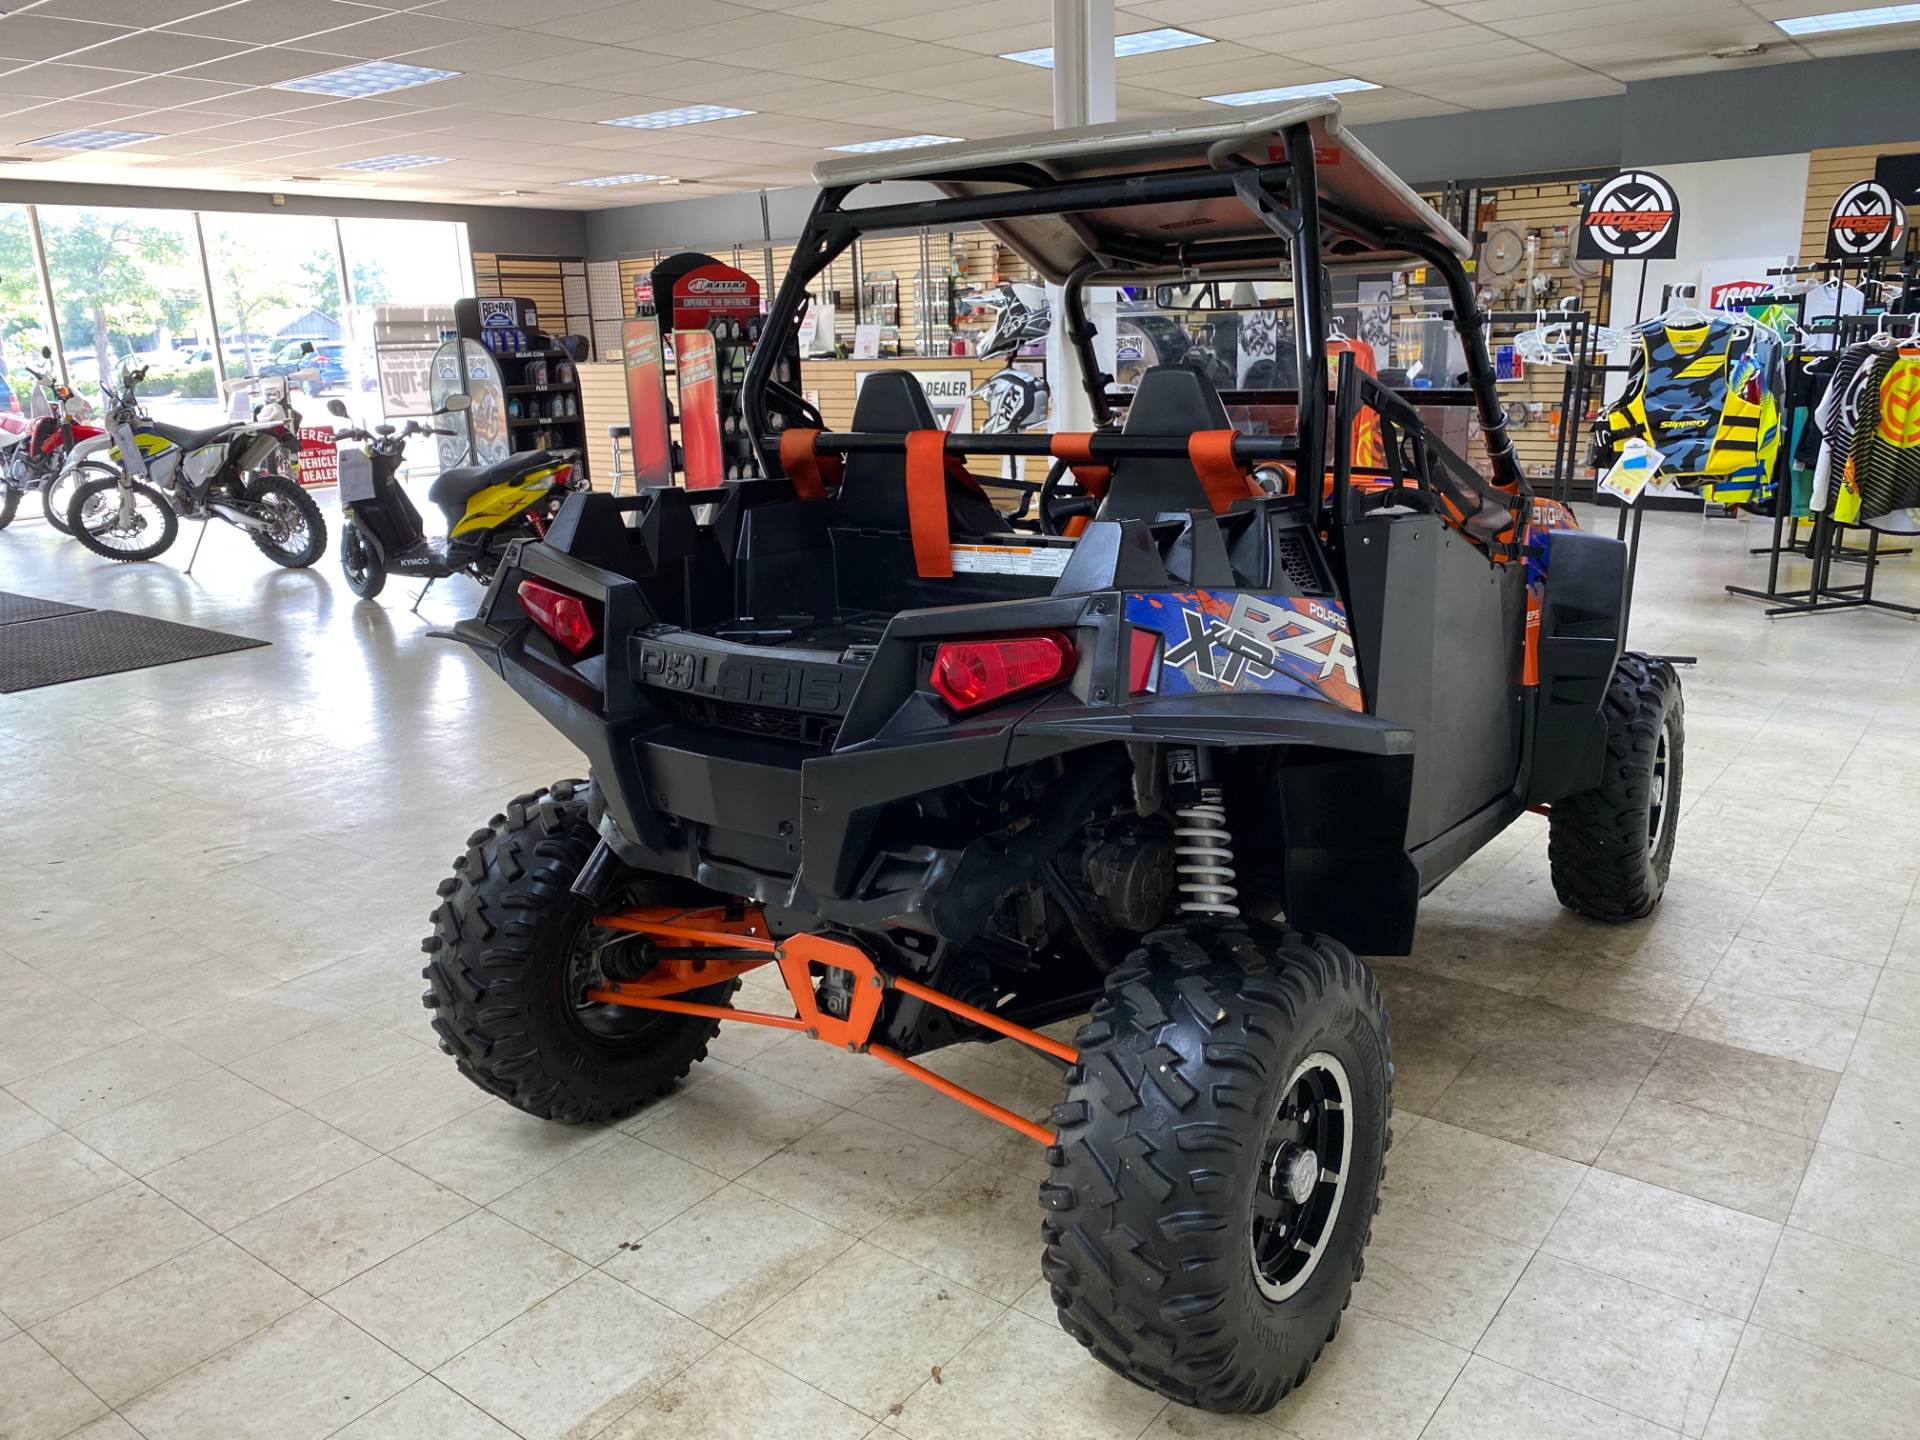 2013 Polaris RZR® XP 900 EPS LE in Herkimer, New York - Photo 11